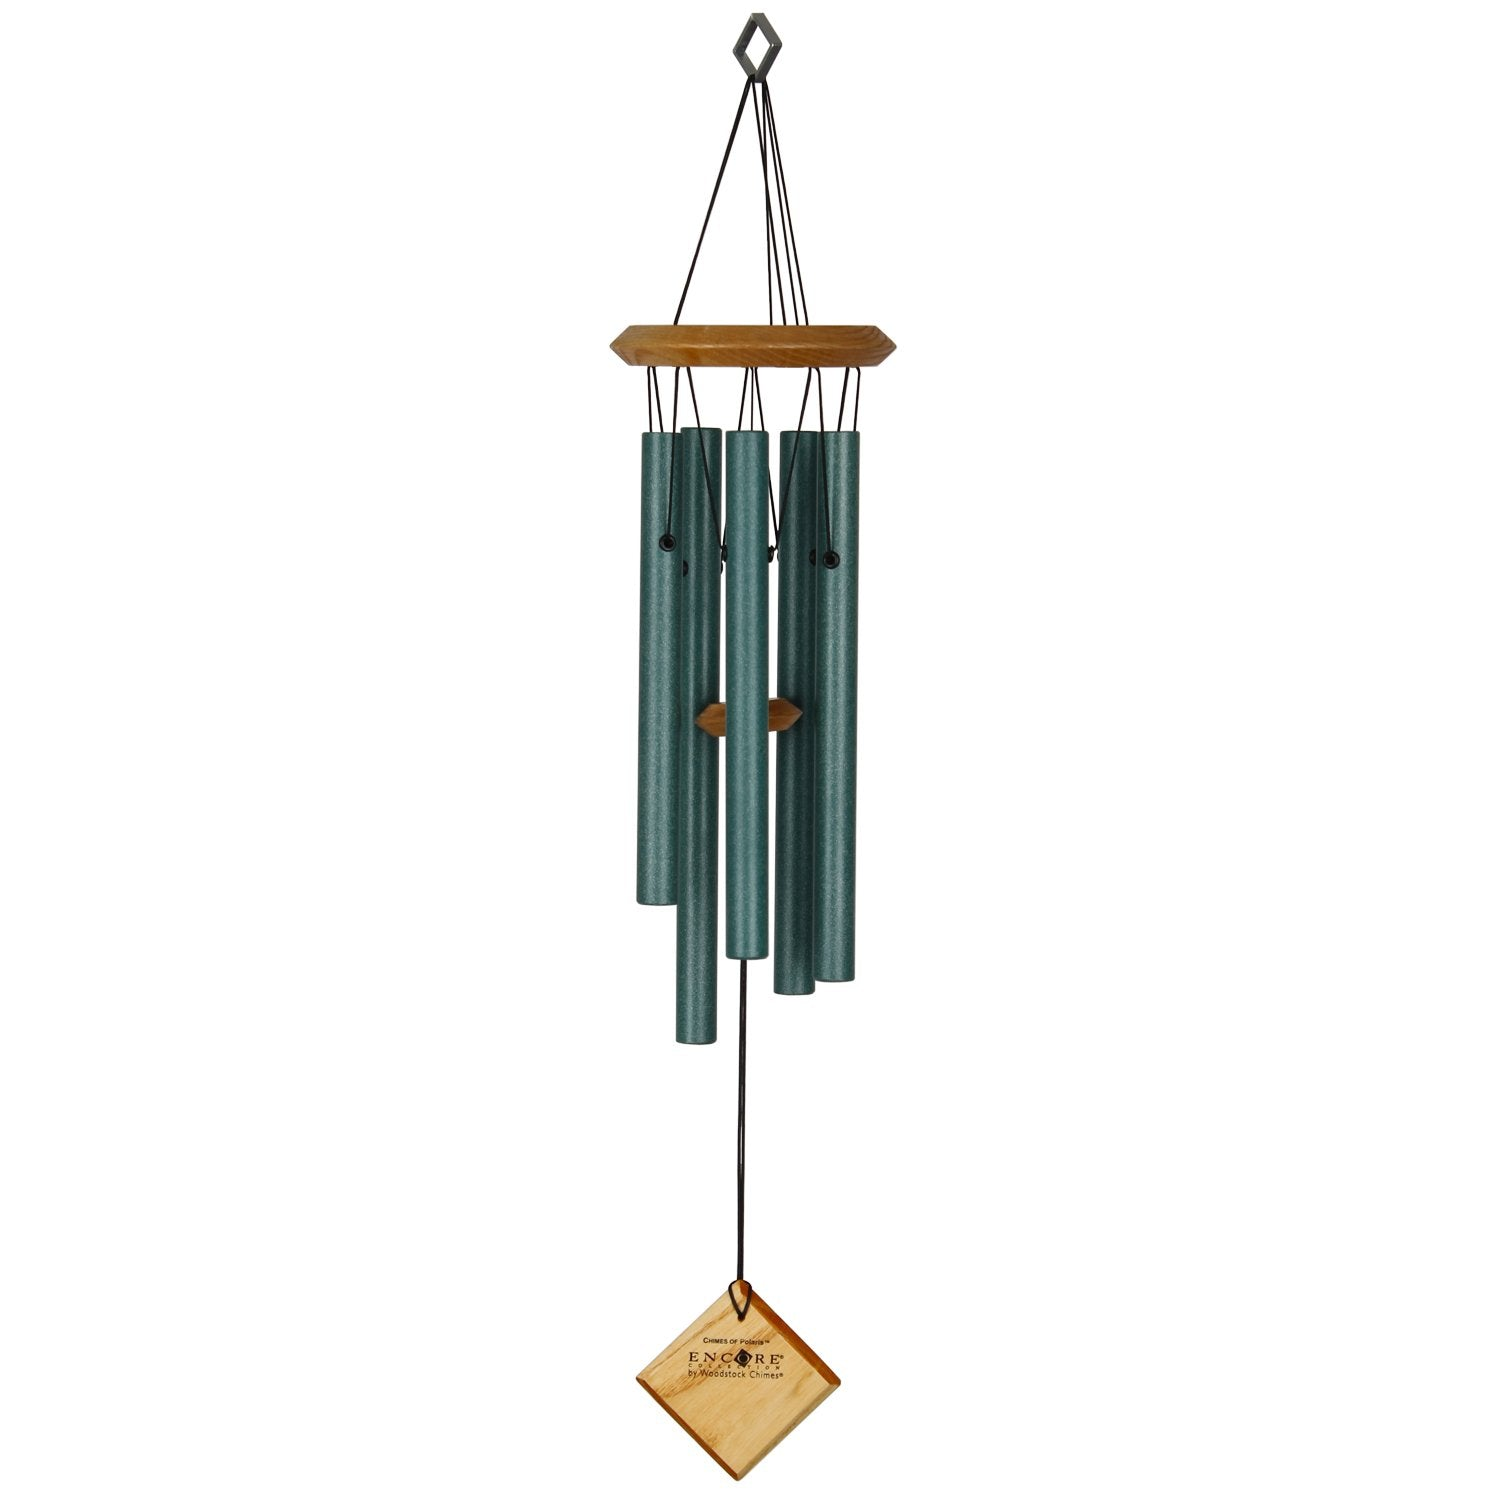 Encore Chimes of Polaris - Verdigris full product image